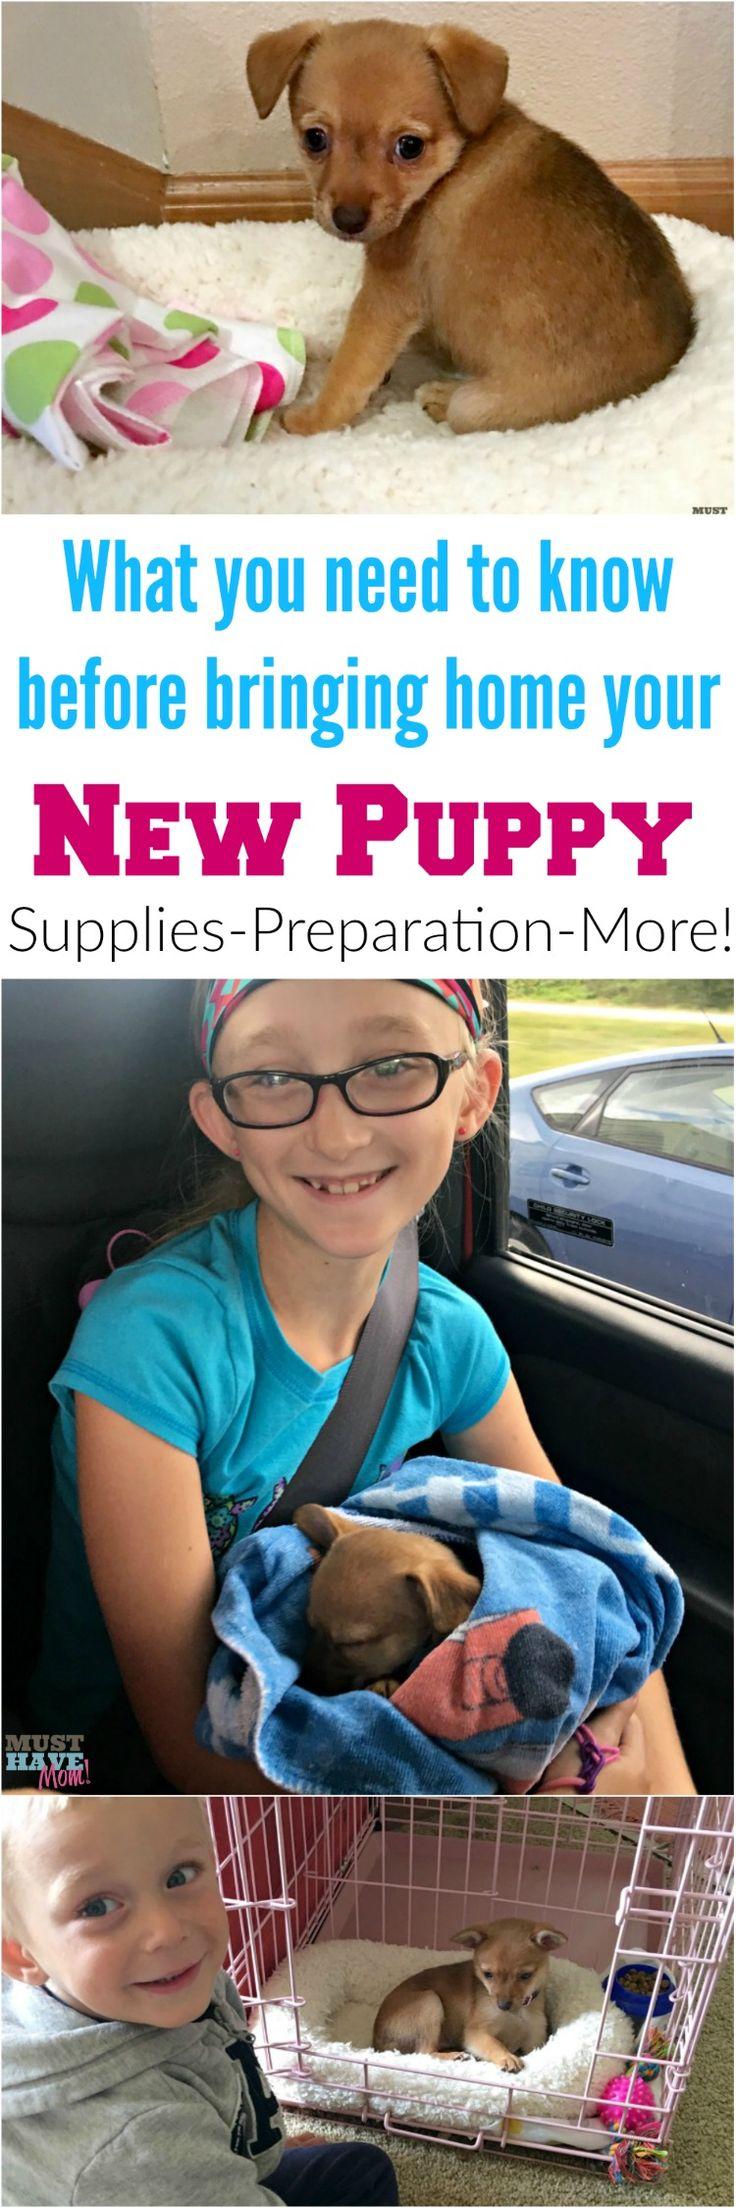 how to prepare to bring a puppy home